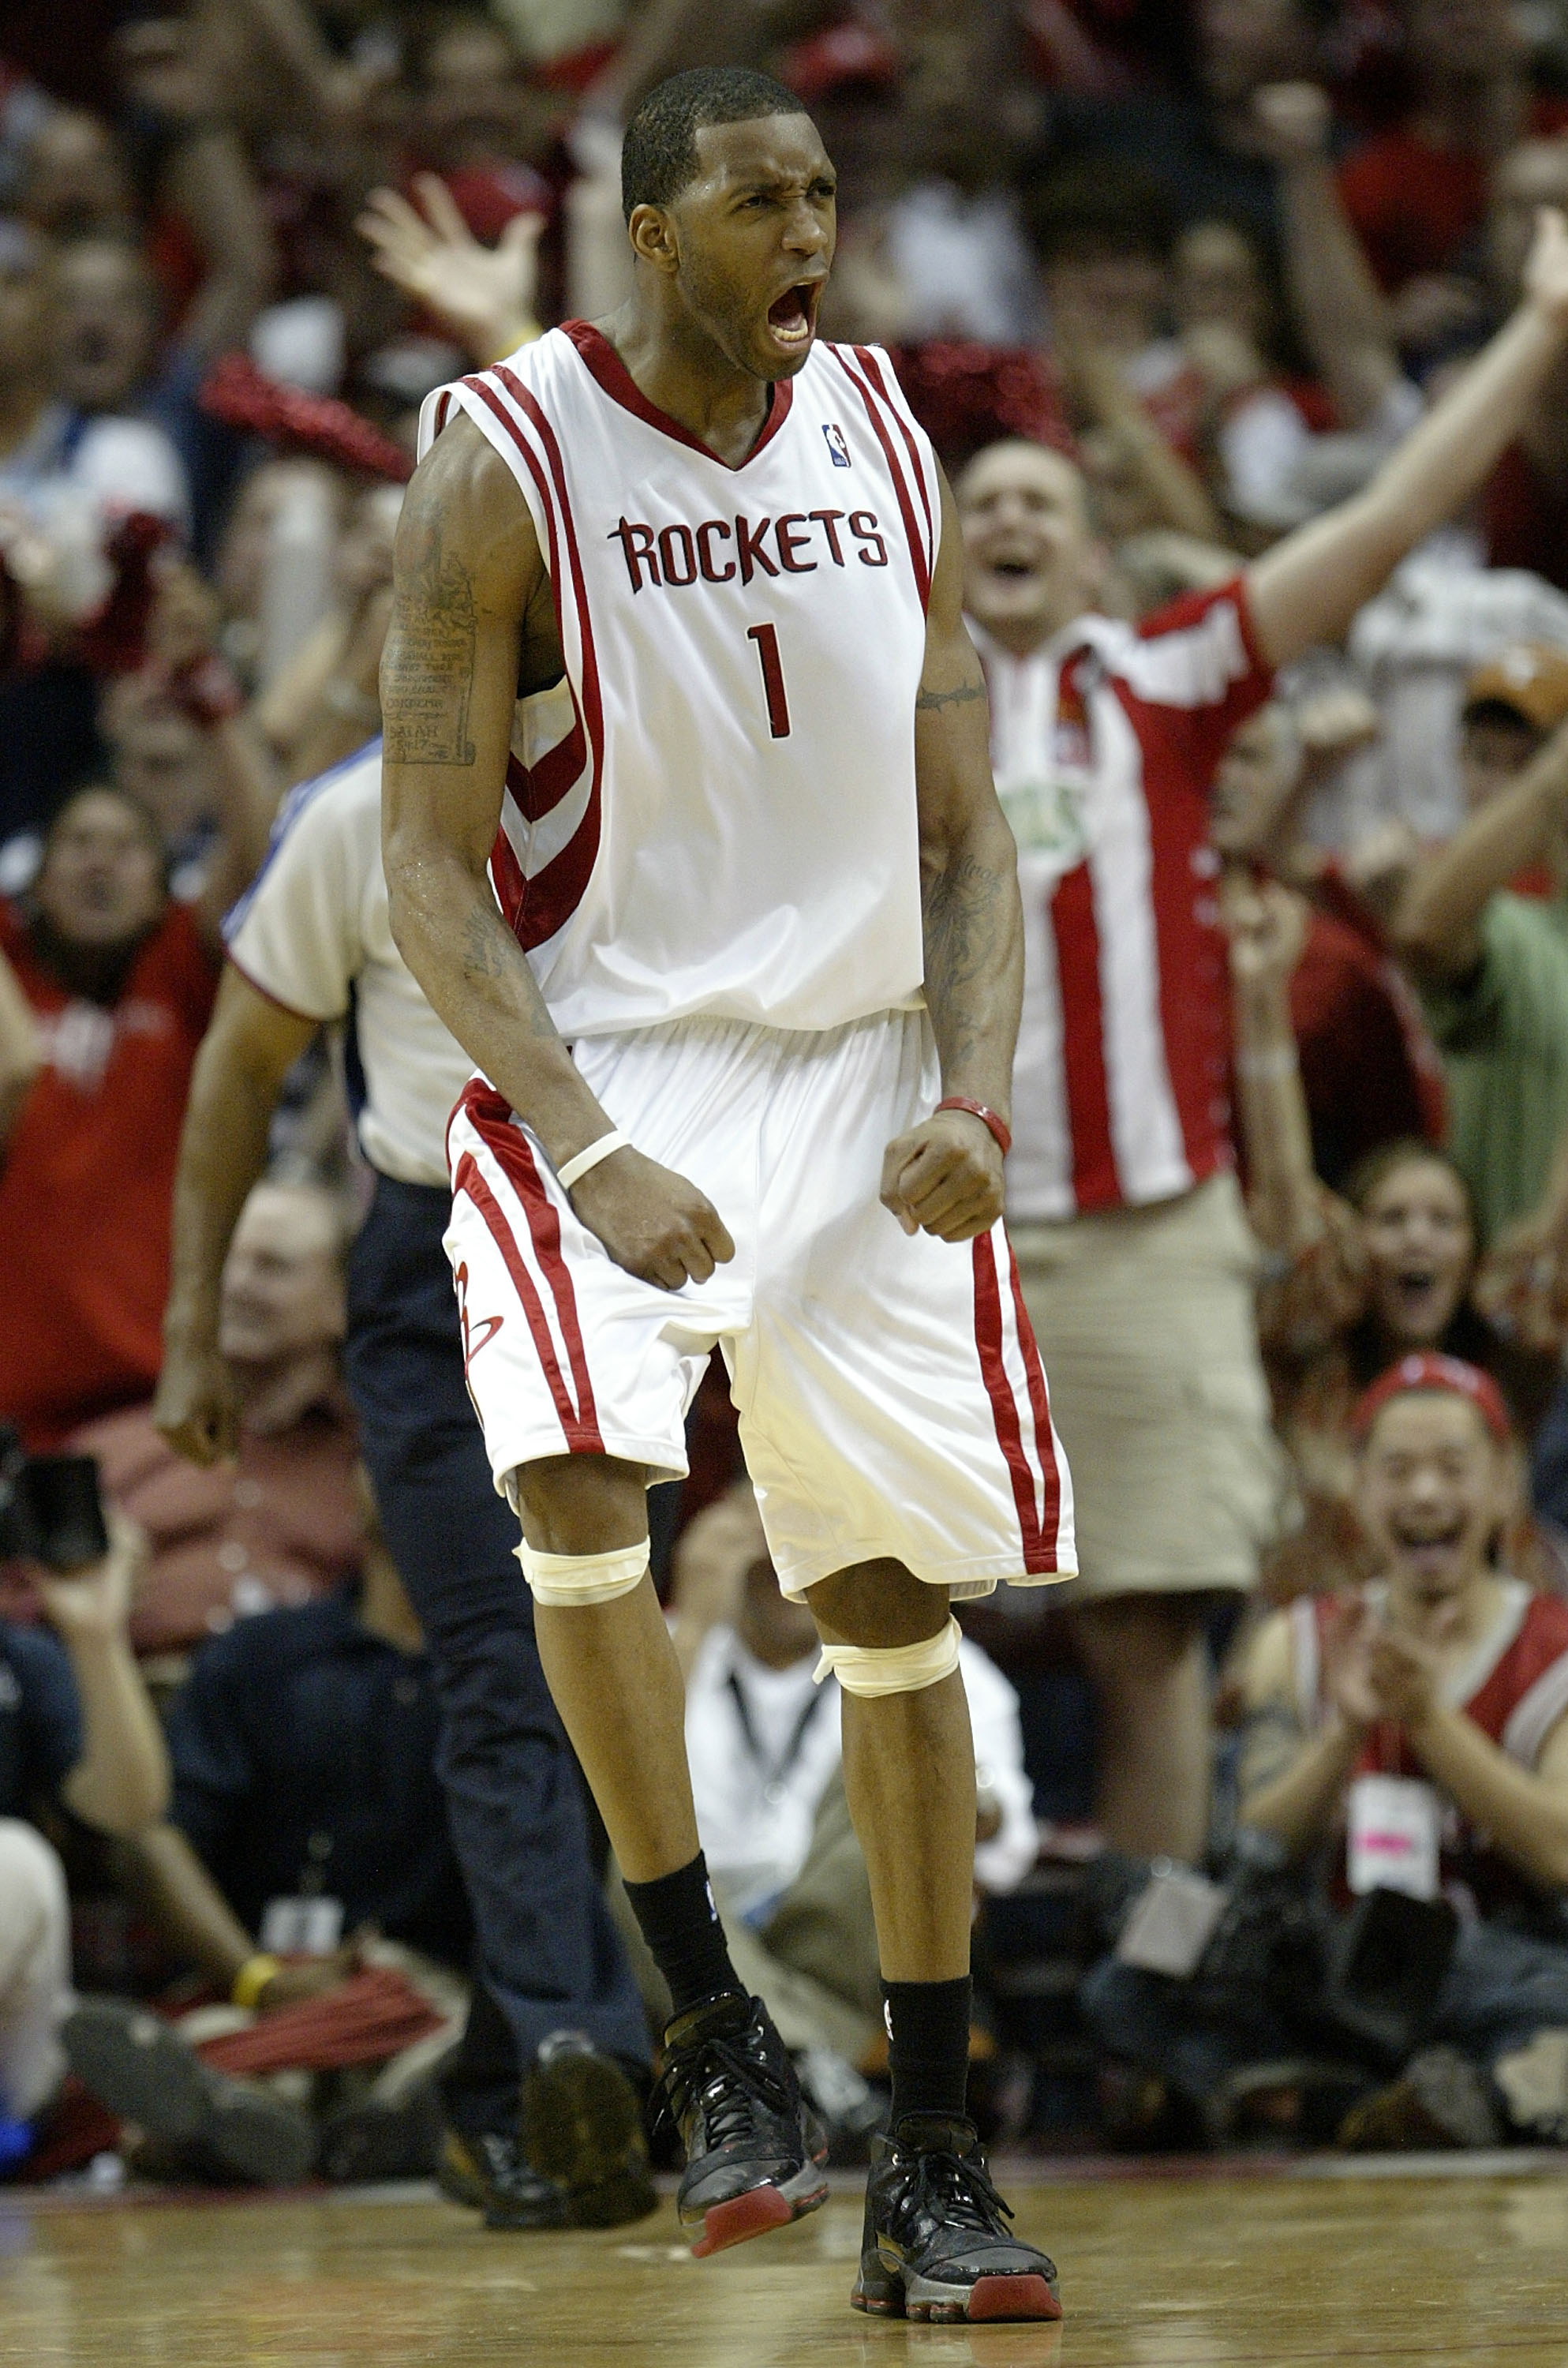 HOUSTON - MAY 5:  Forward Tracy McGrady #1 of the Houston Rockets reacts against the Utah Jazz in Game Seven of the Western Conference Quarterfinals during the 2007 NBA Playoffs at Toyota Center May 5, 2007 in Houston, Texas. NOTE TO USER: User expressly